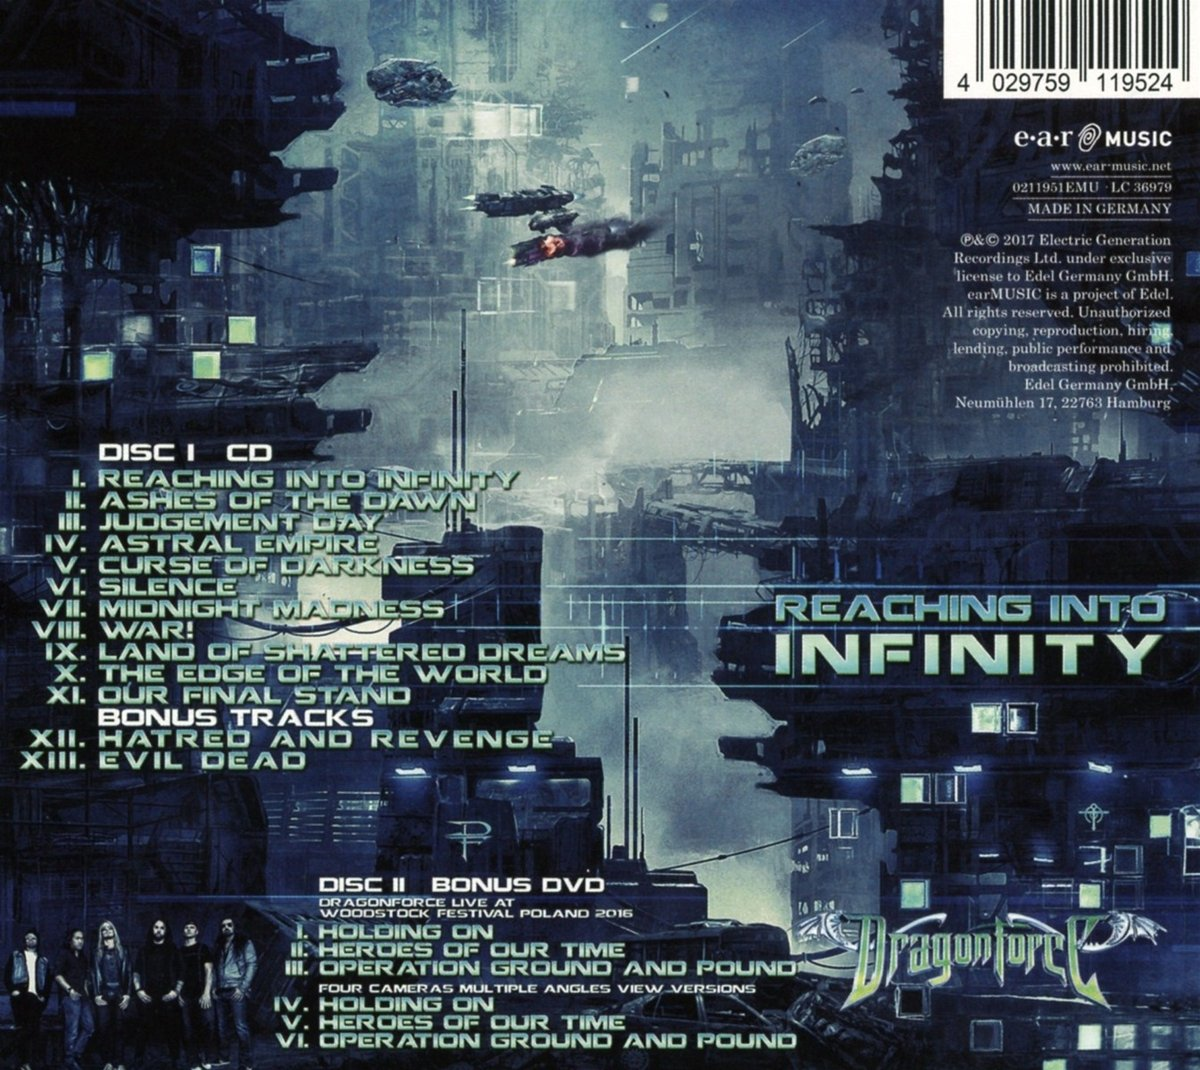 Reaching Into Infinity (Special Edition)   Dragonforce: Amazon.de: Musik